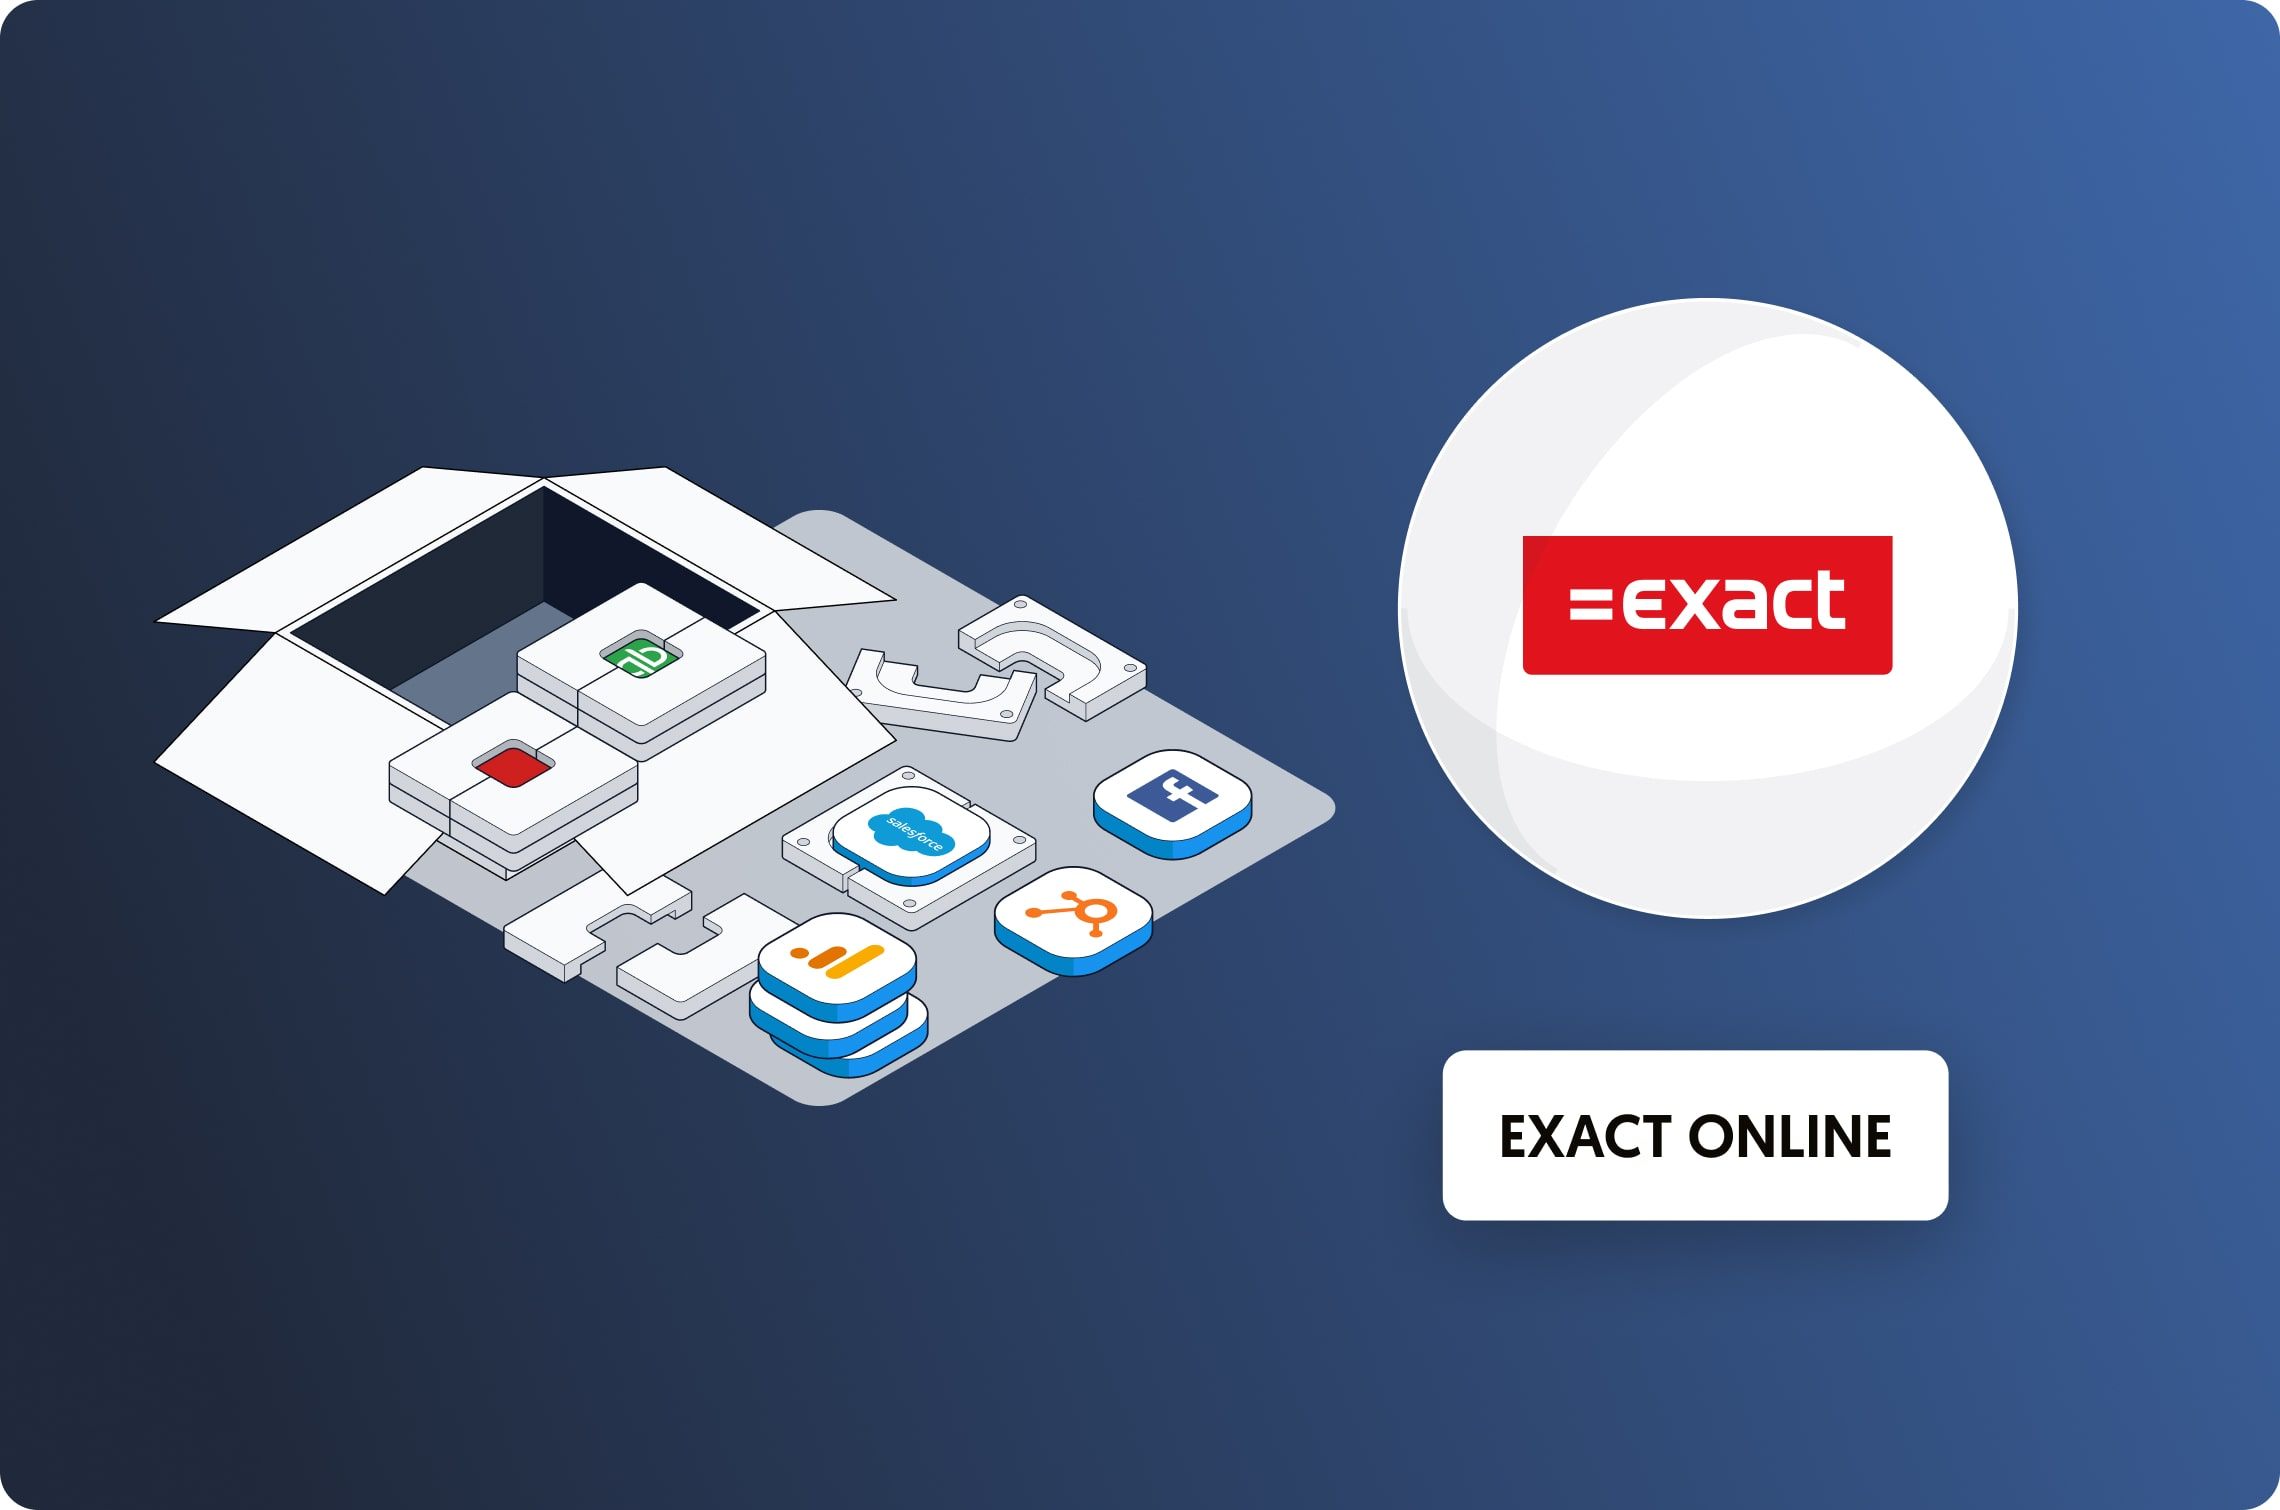 How to Integrate Exact Online Data with Any Dashboarding App